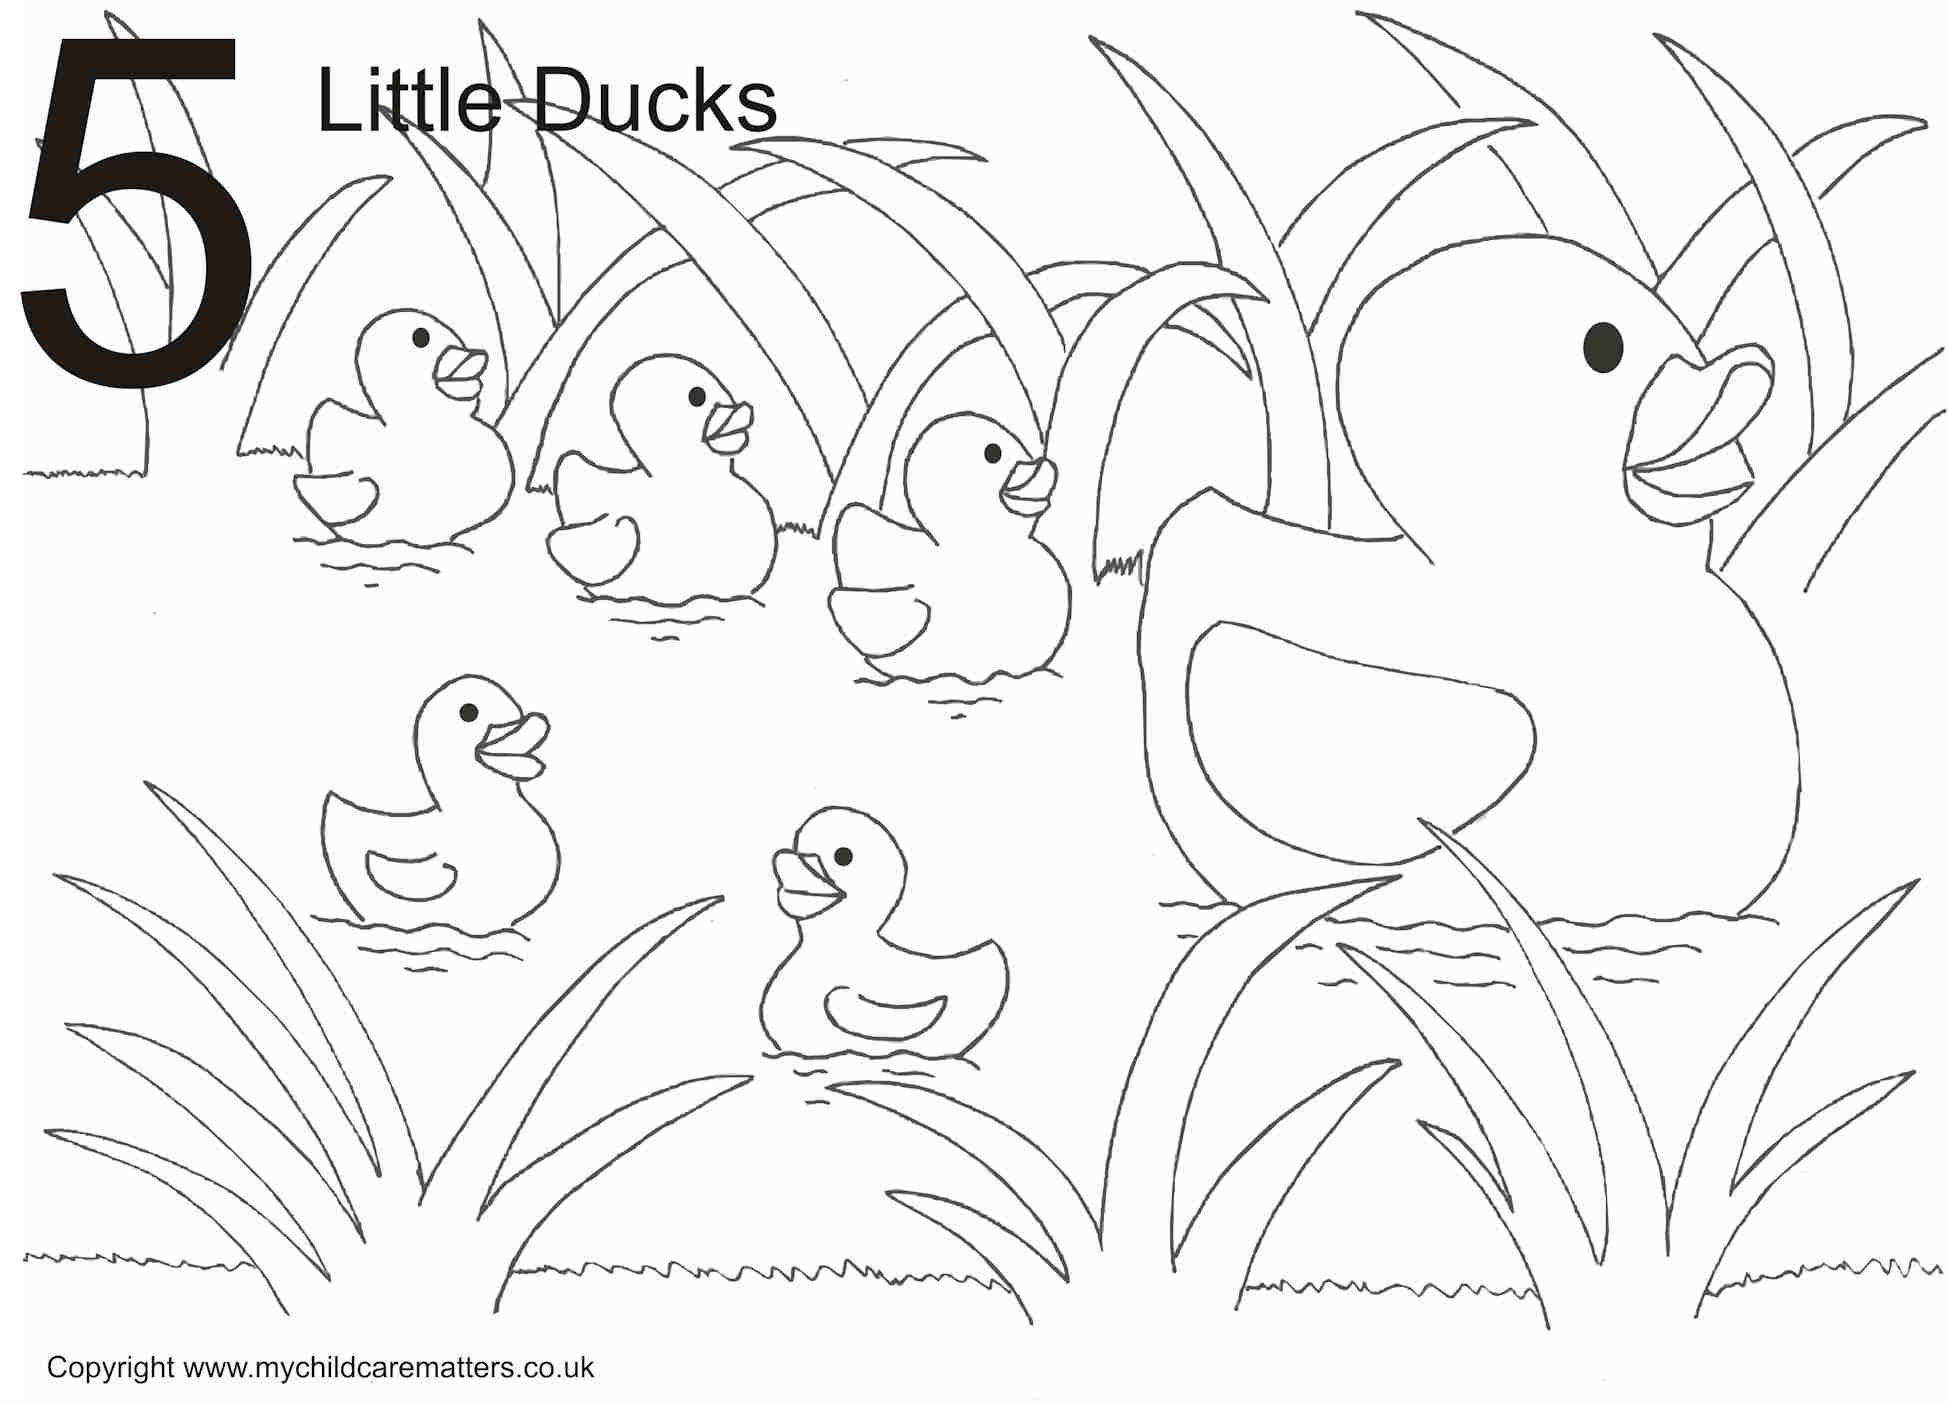 Old Woman Who Lived In A Shoe Coloring Page Worksheet Coloring Pages Unicorn Coloring Pages Coloring Pages Bird Coloring Pages